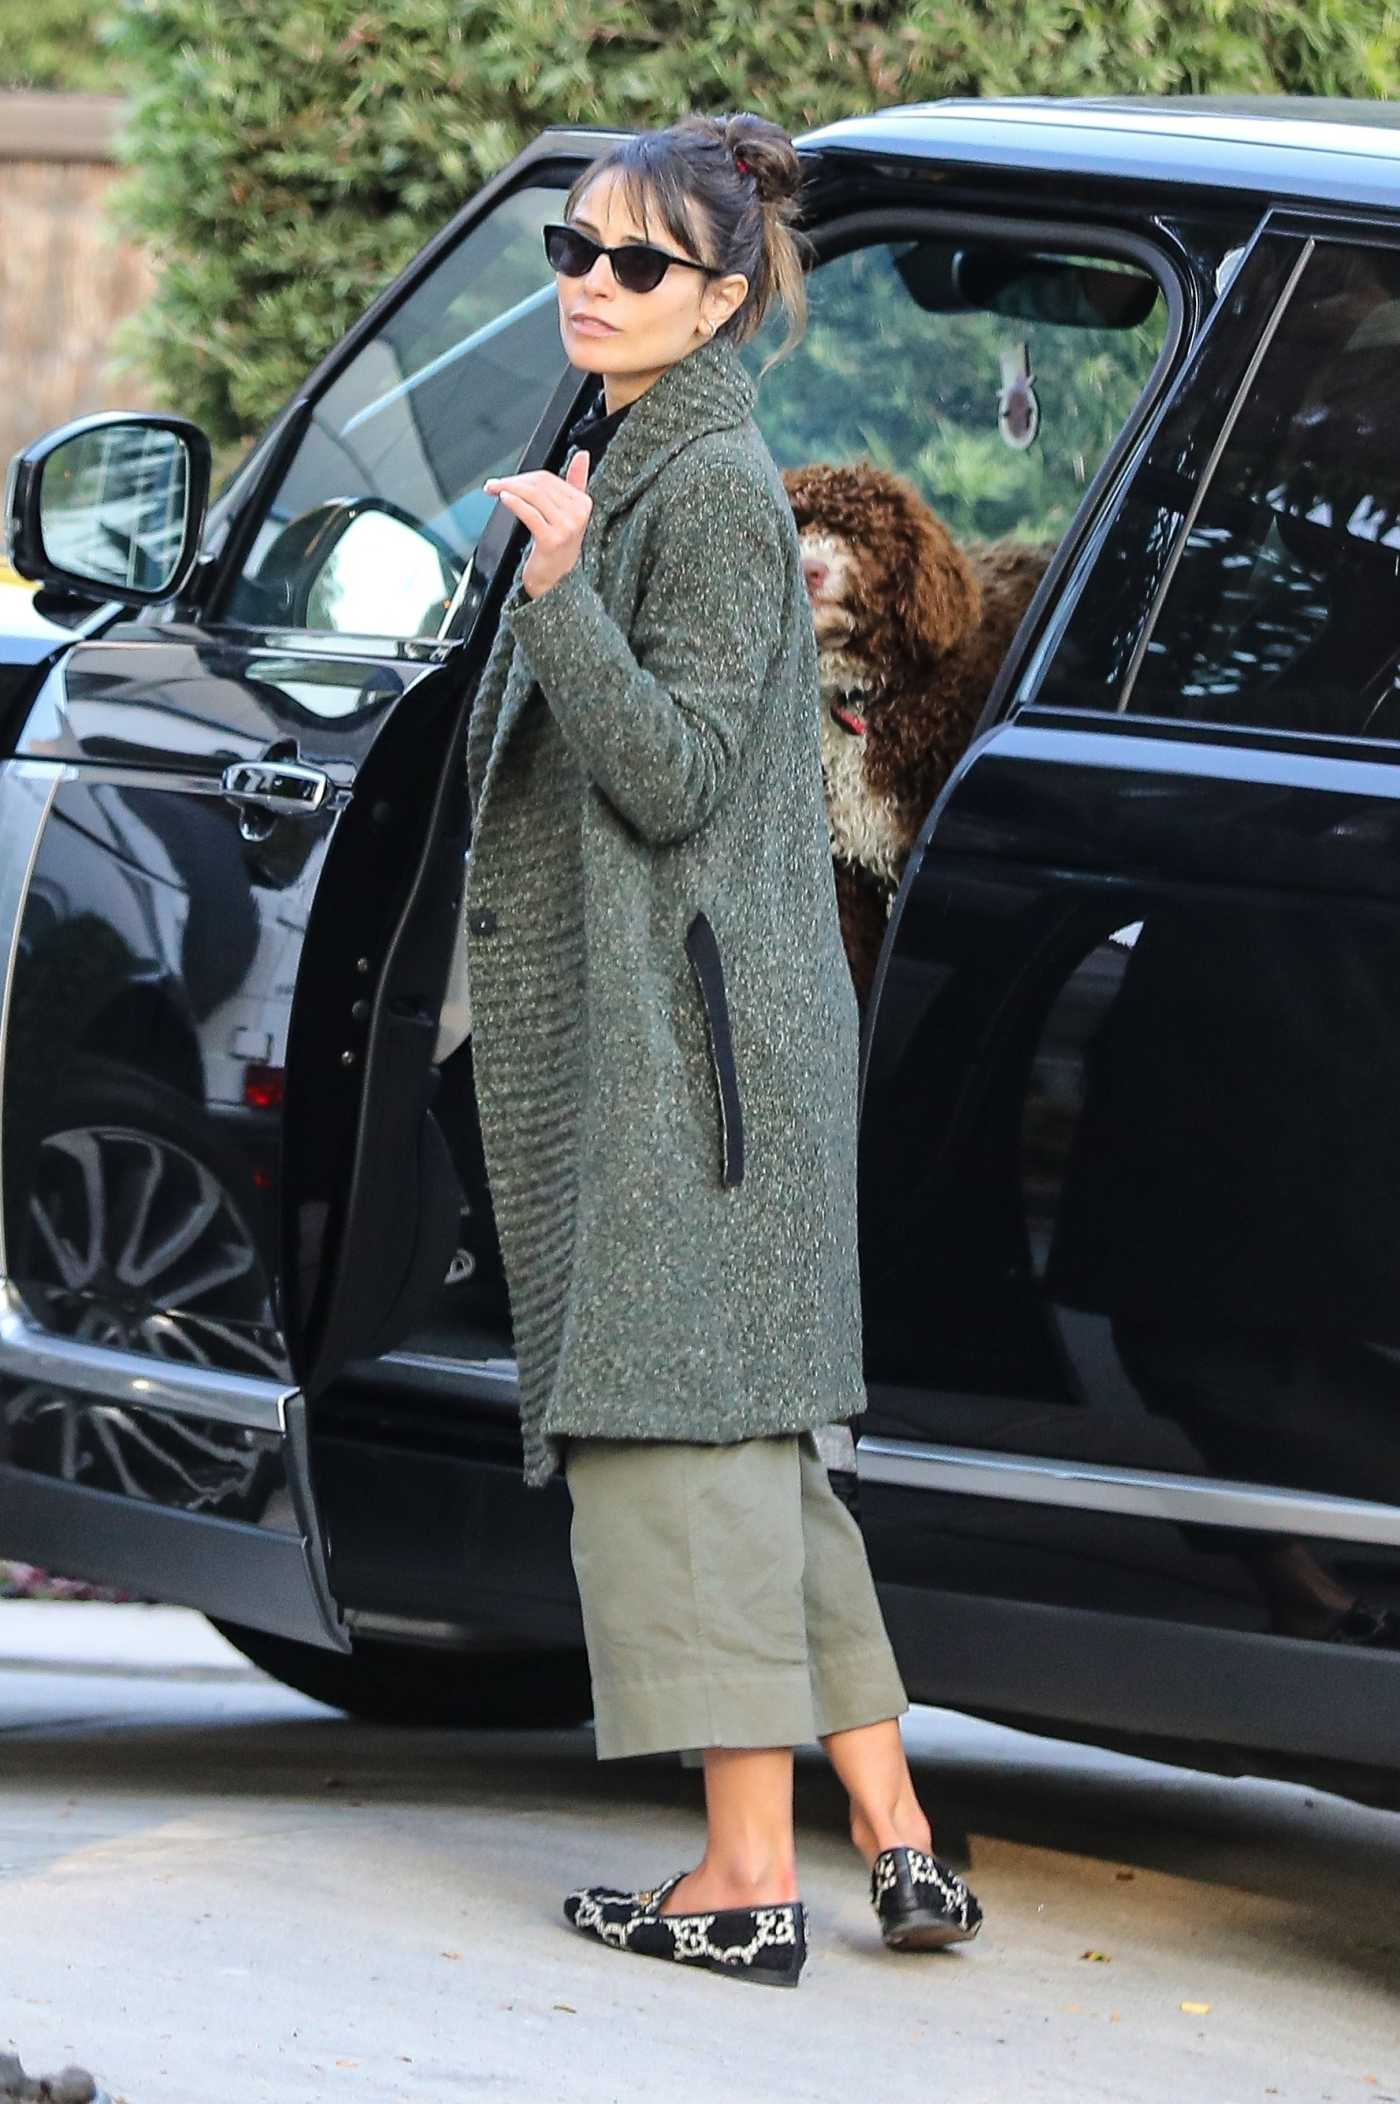 Jordana Brewster in a Green Cardigan Was Seen Out in West Hollywood 11/23/2020